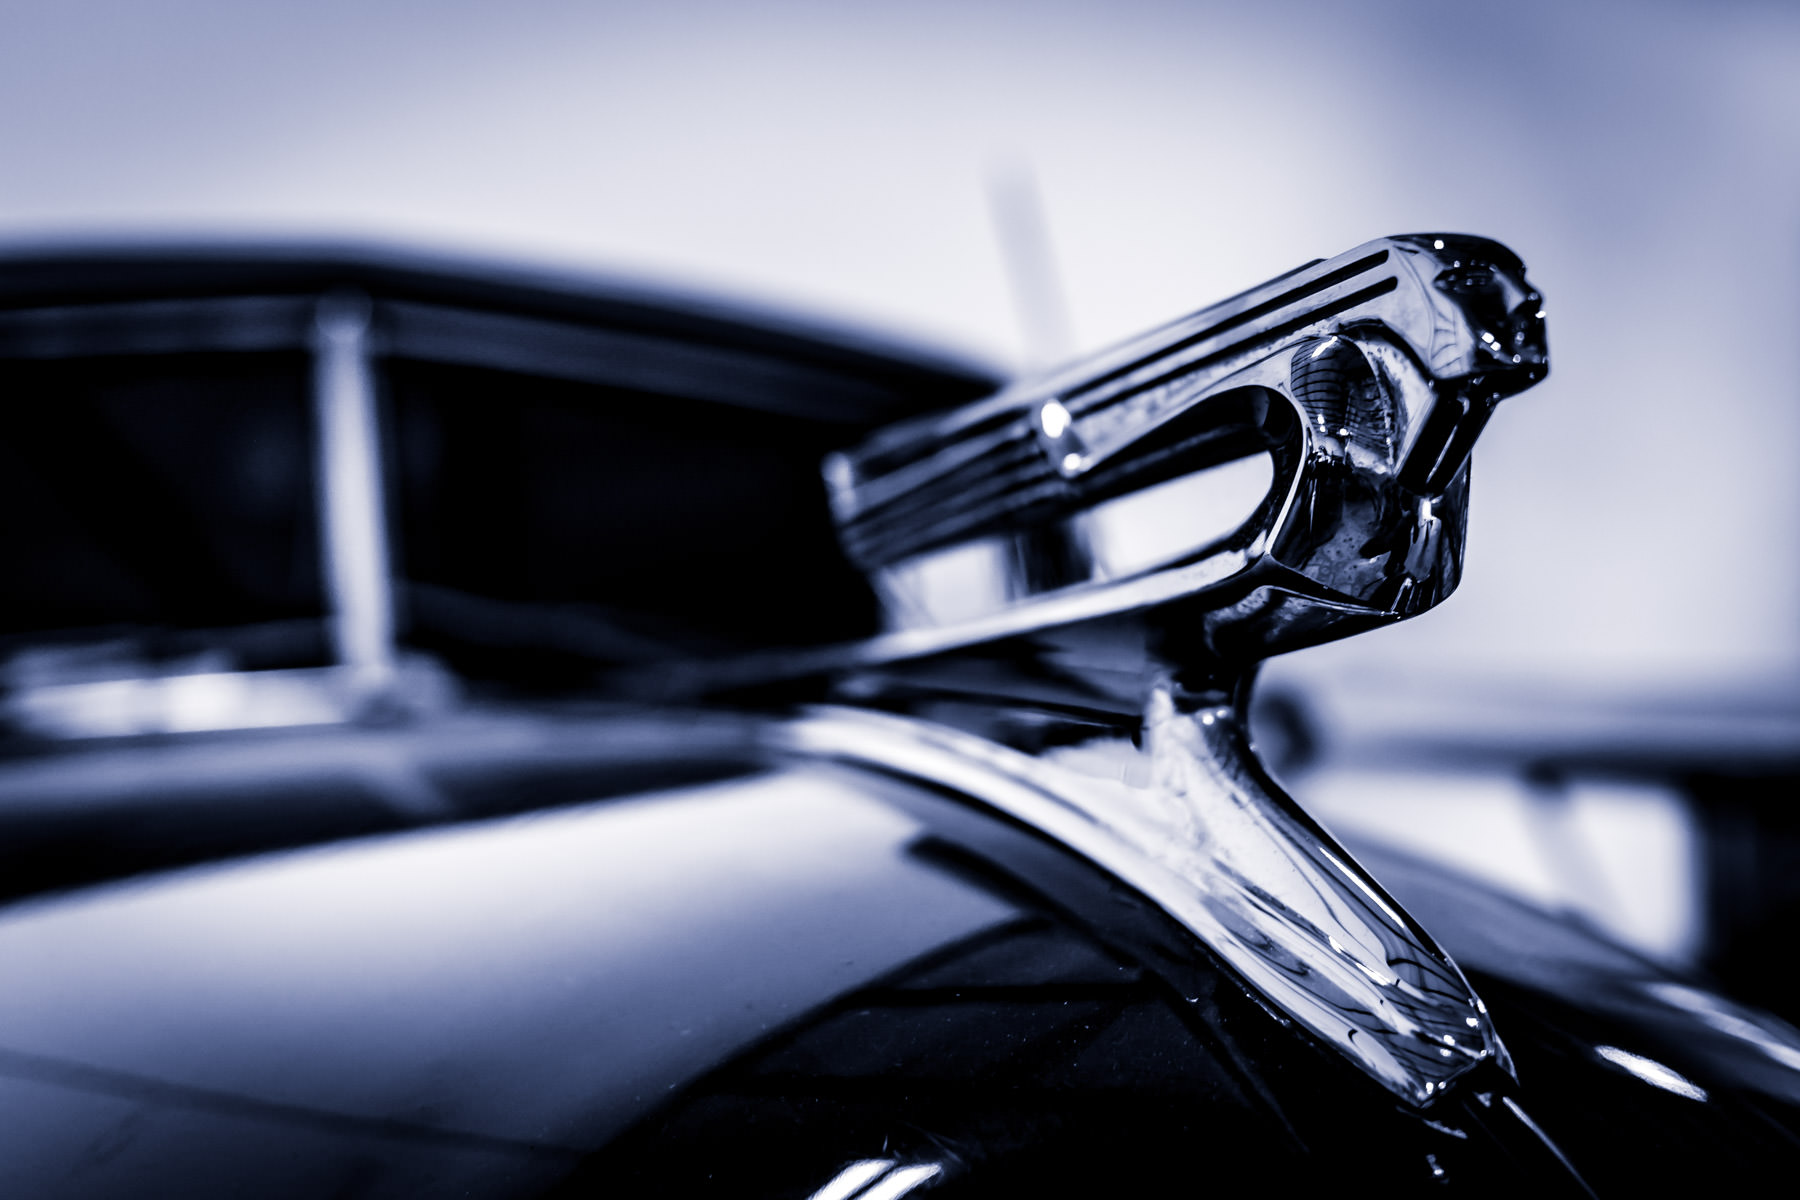 The hood ornament of a 1941 Chevrolet Special Deluxe in the collection of Addison, Texas' Cavanaugh Flight Museum.